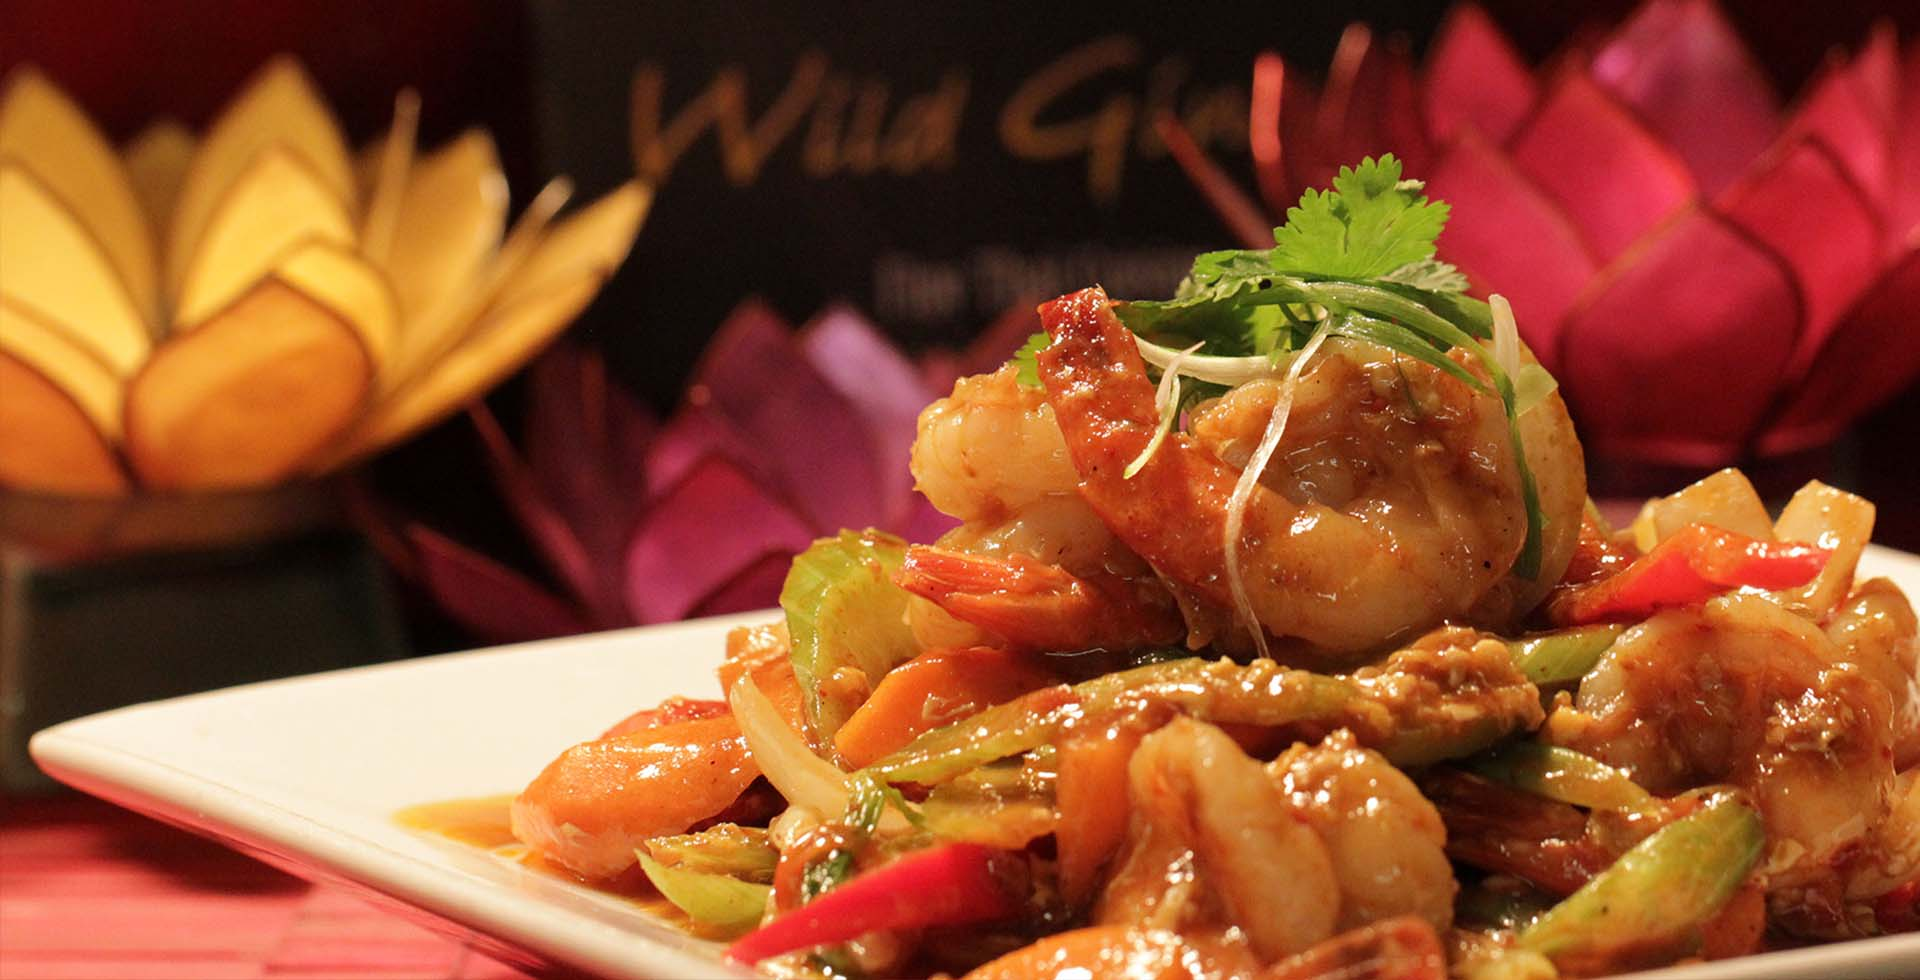 Wild Ginger Restaurant Mount Gambier Images